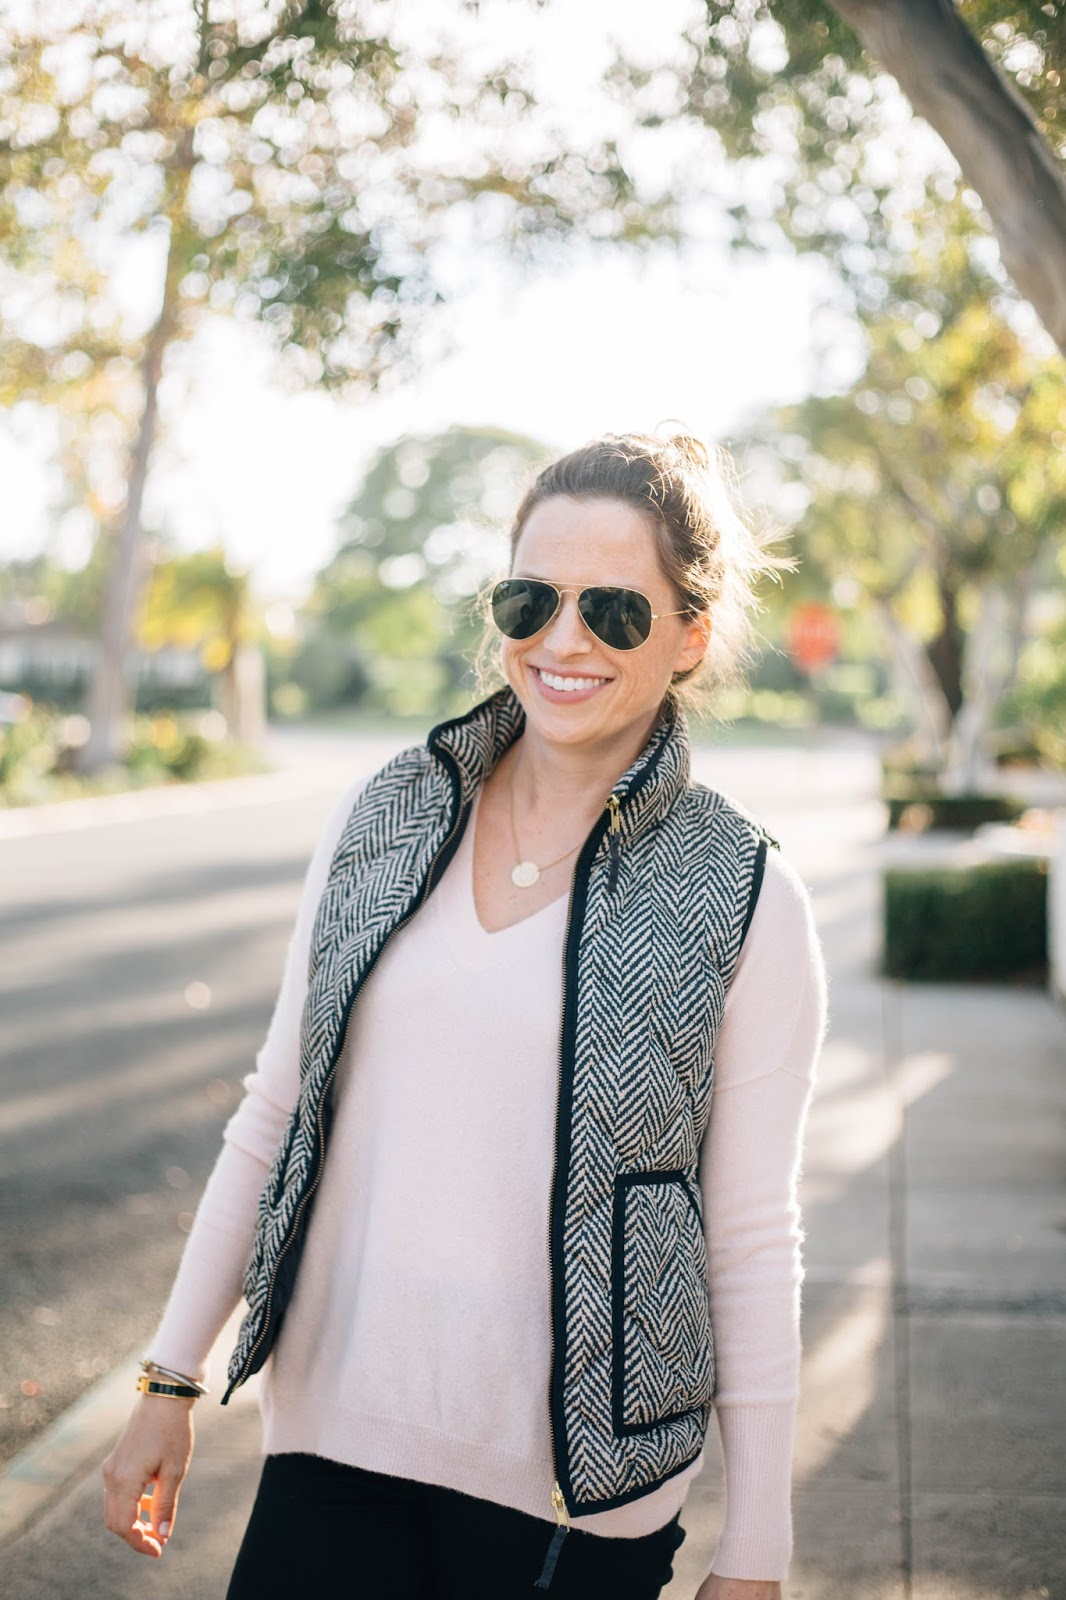 cashmere sweater and vest outfit